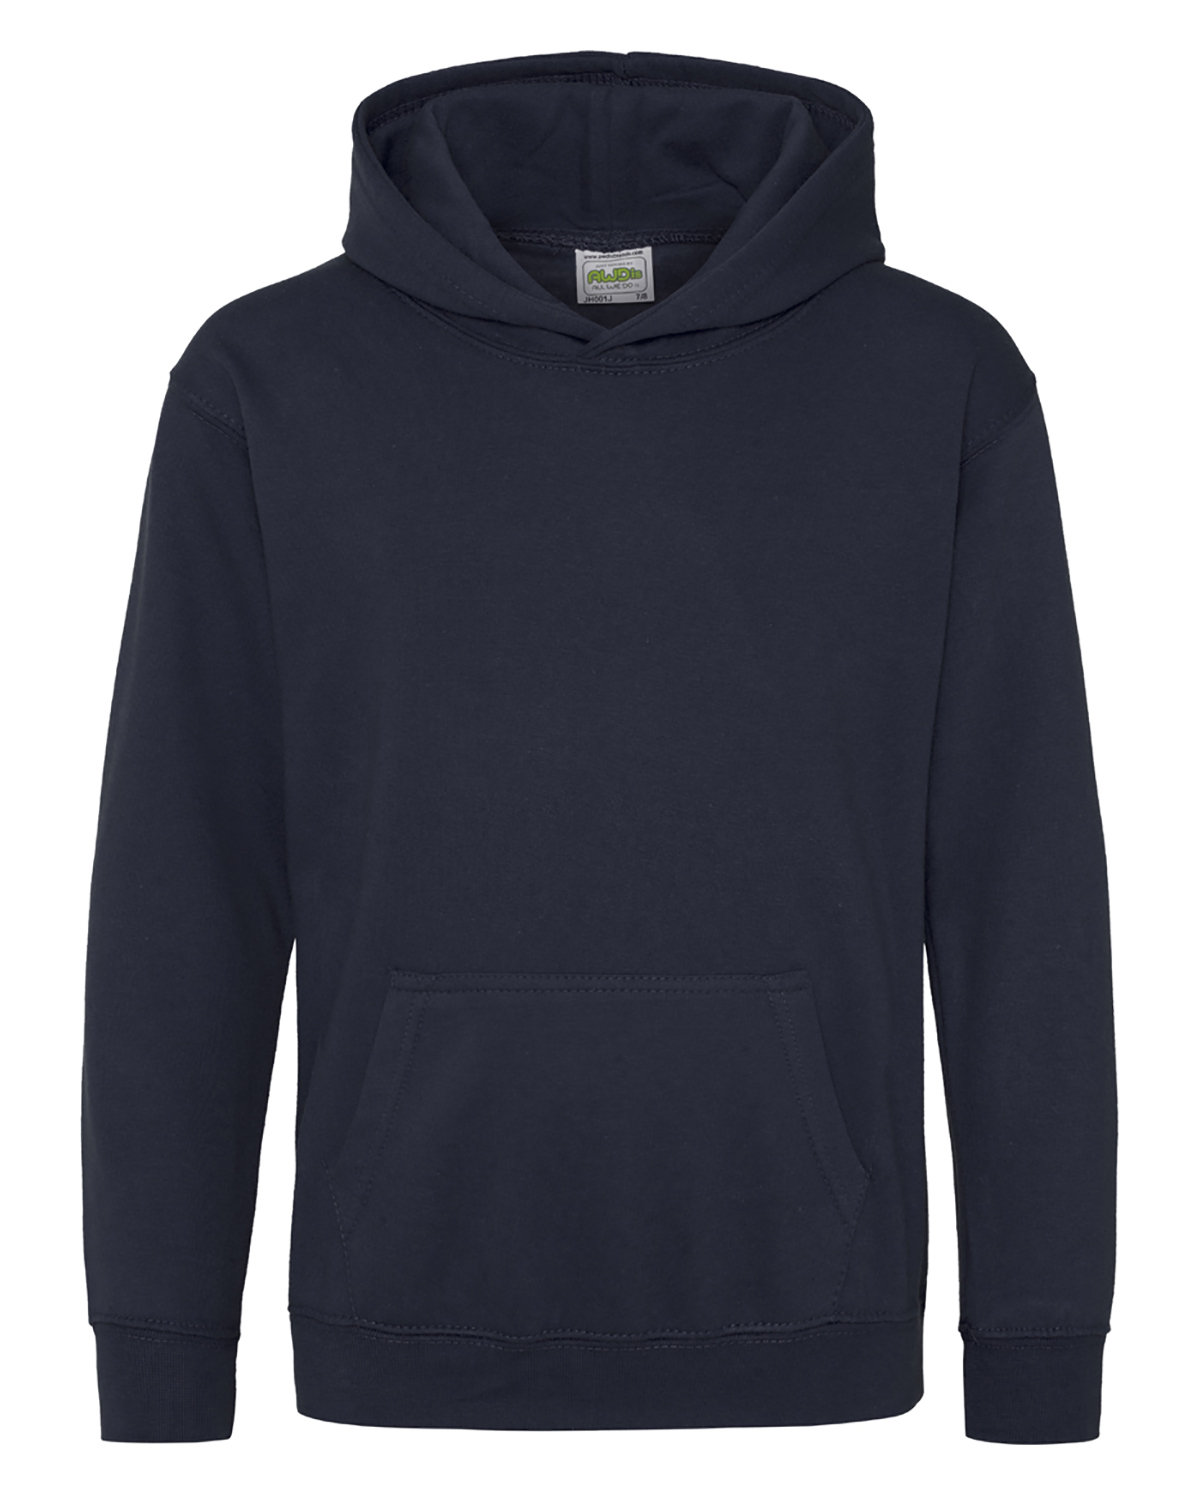 Just Hoods By AWDis Youth 80/20 Midweight College Hooded Sweatshirt OXFORD NAVY